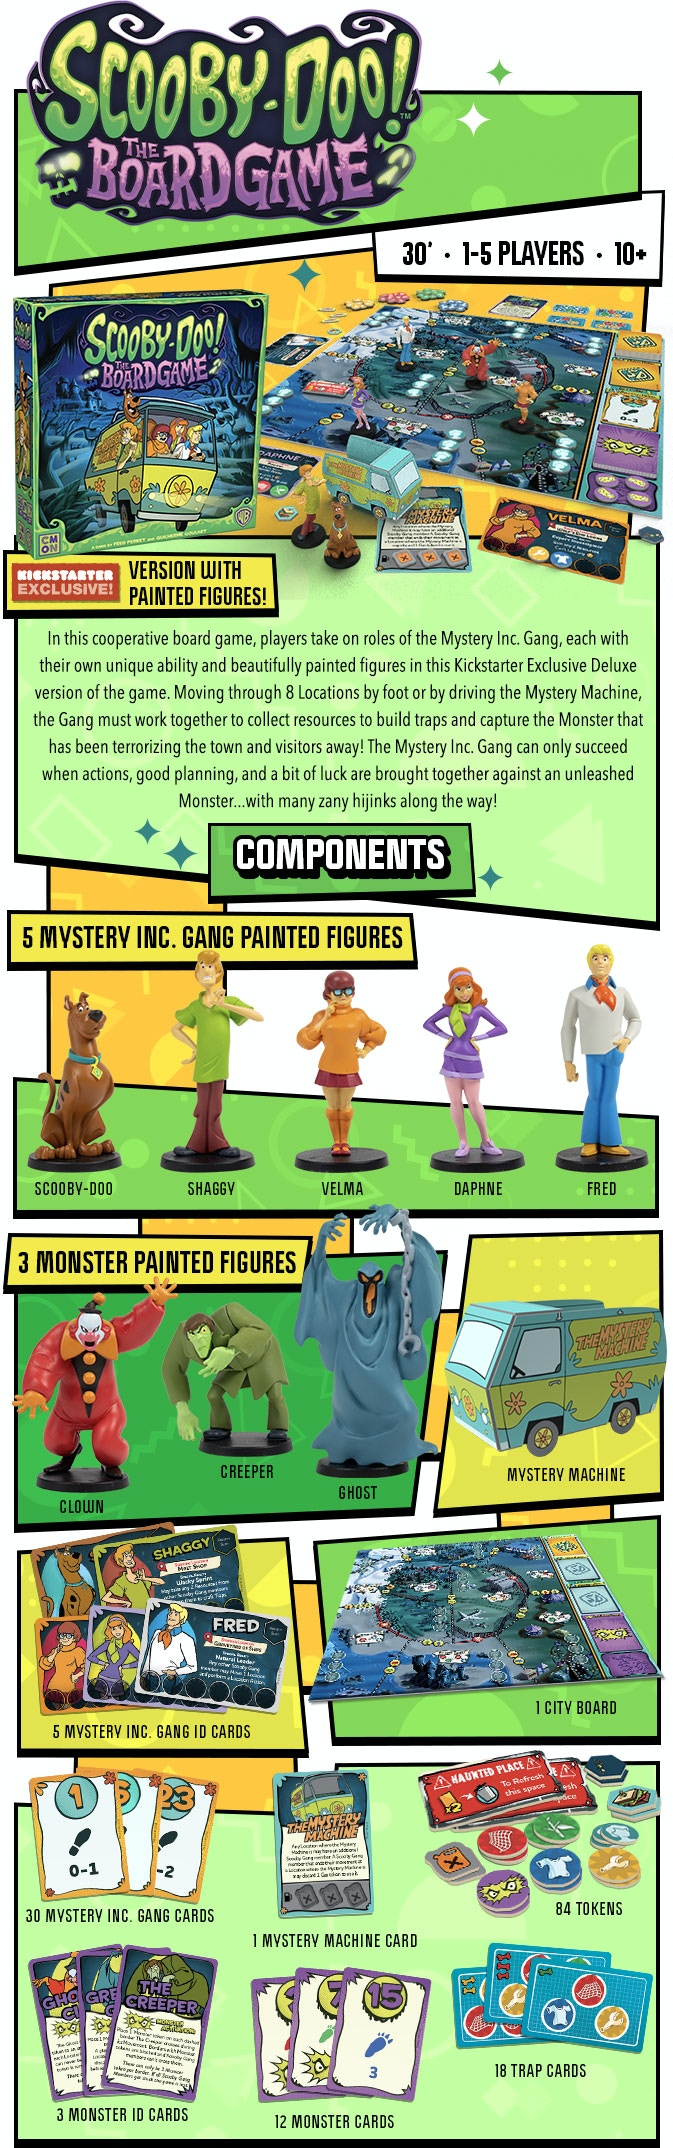 Scooby Doo The Board Game - CMON